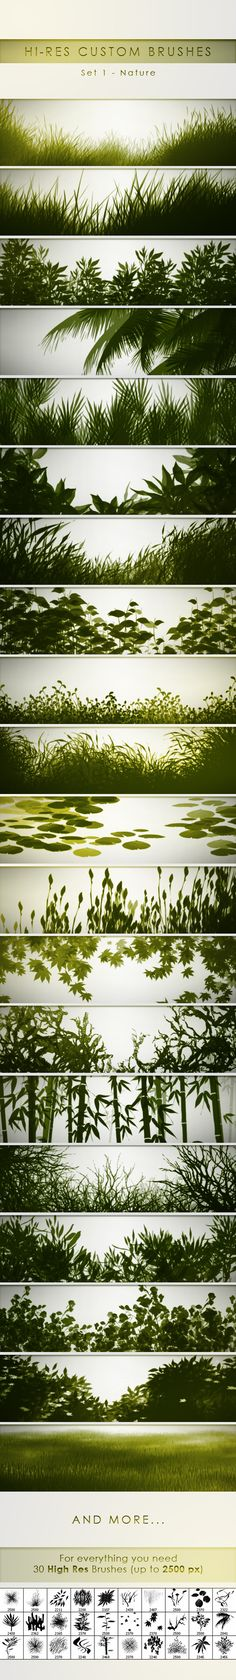 30 Hi-Res Custom Brushes - Nature - Flourishes Brushes